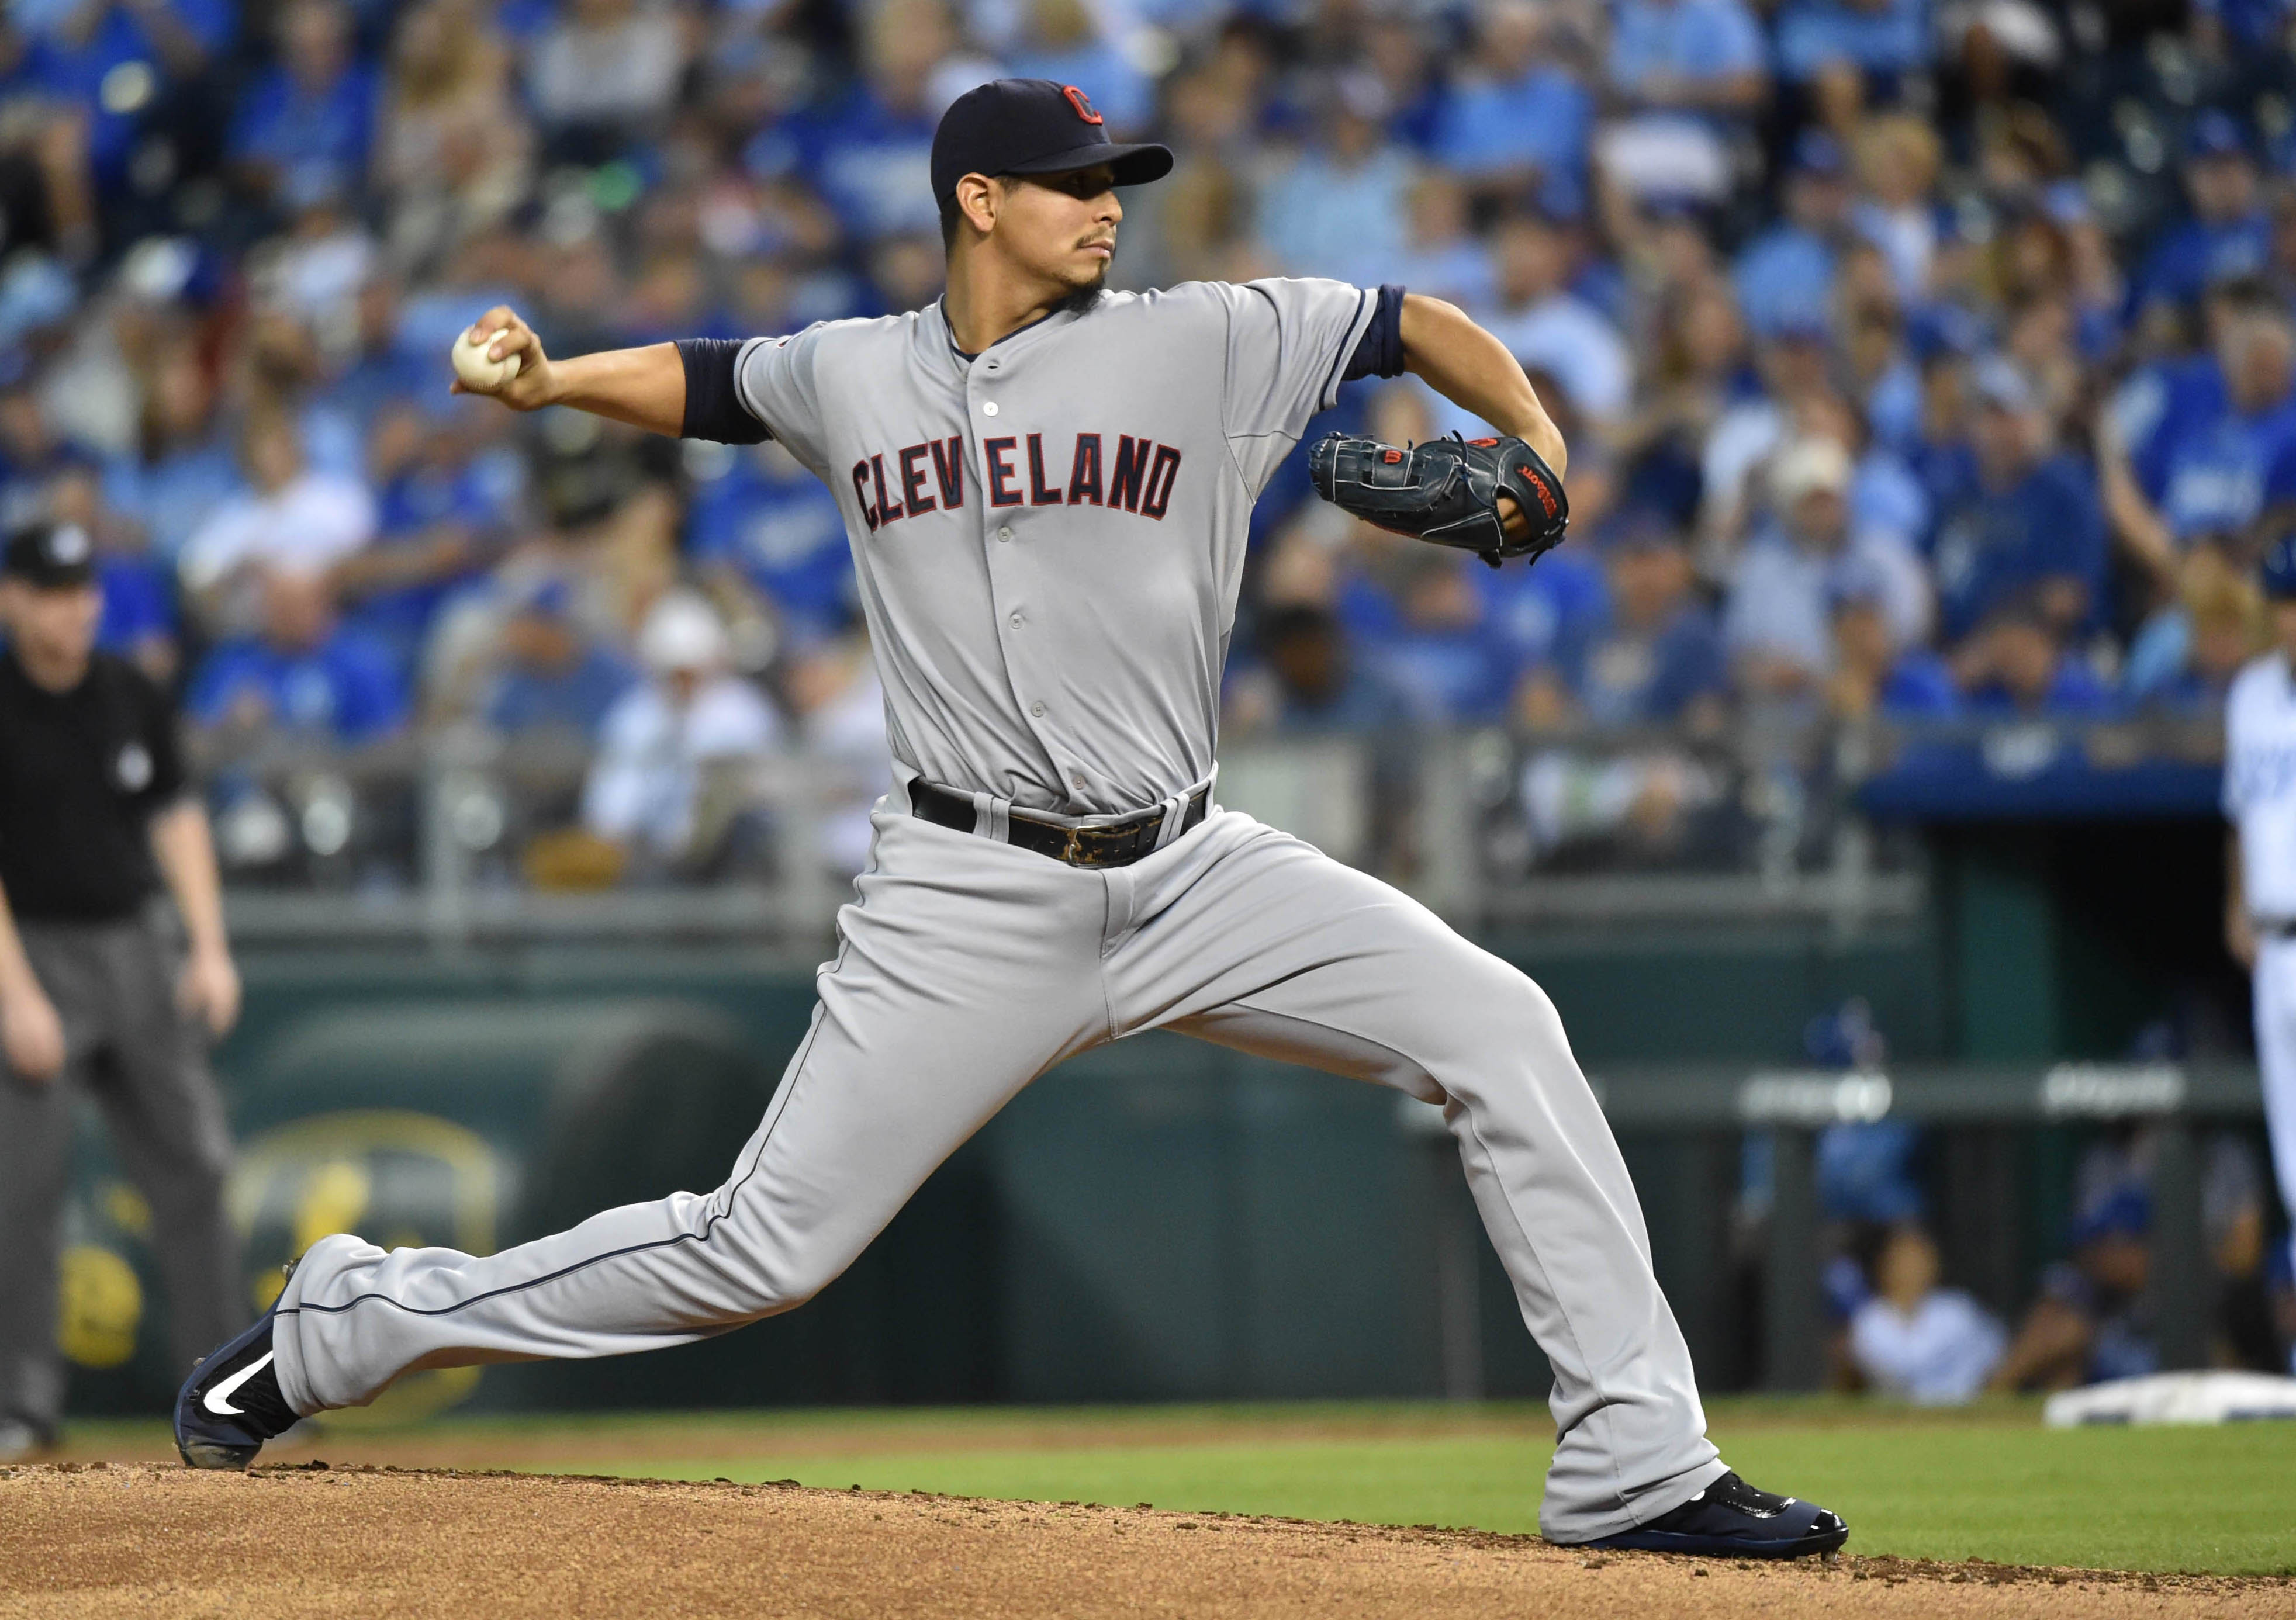 Carlos Carrasco might be my favorite pitcher in baseball. He should lead this Indians rotation in 2016.